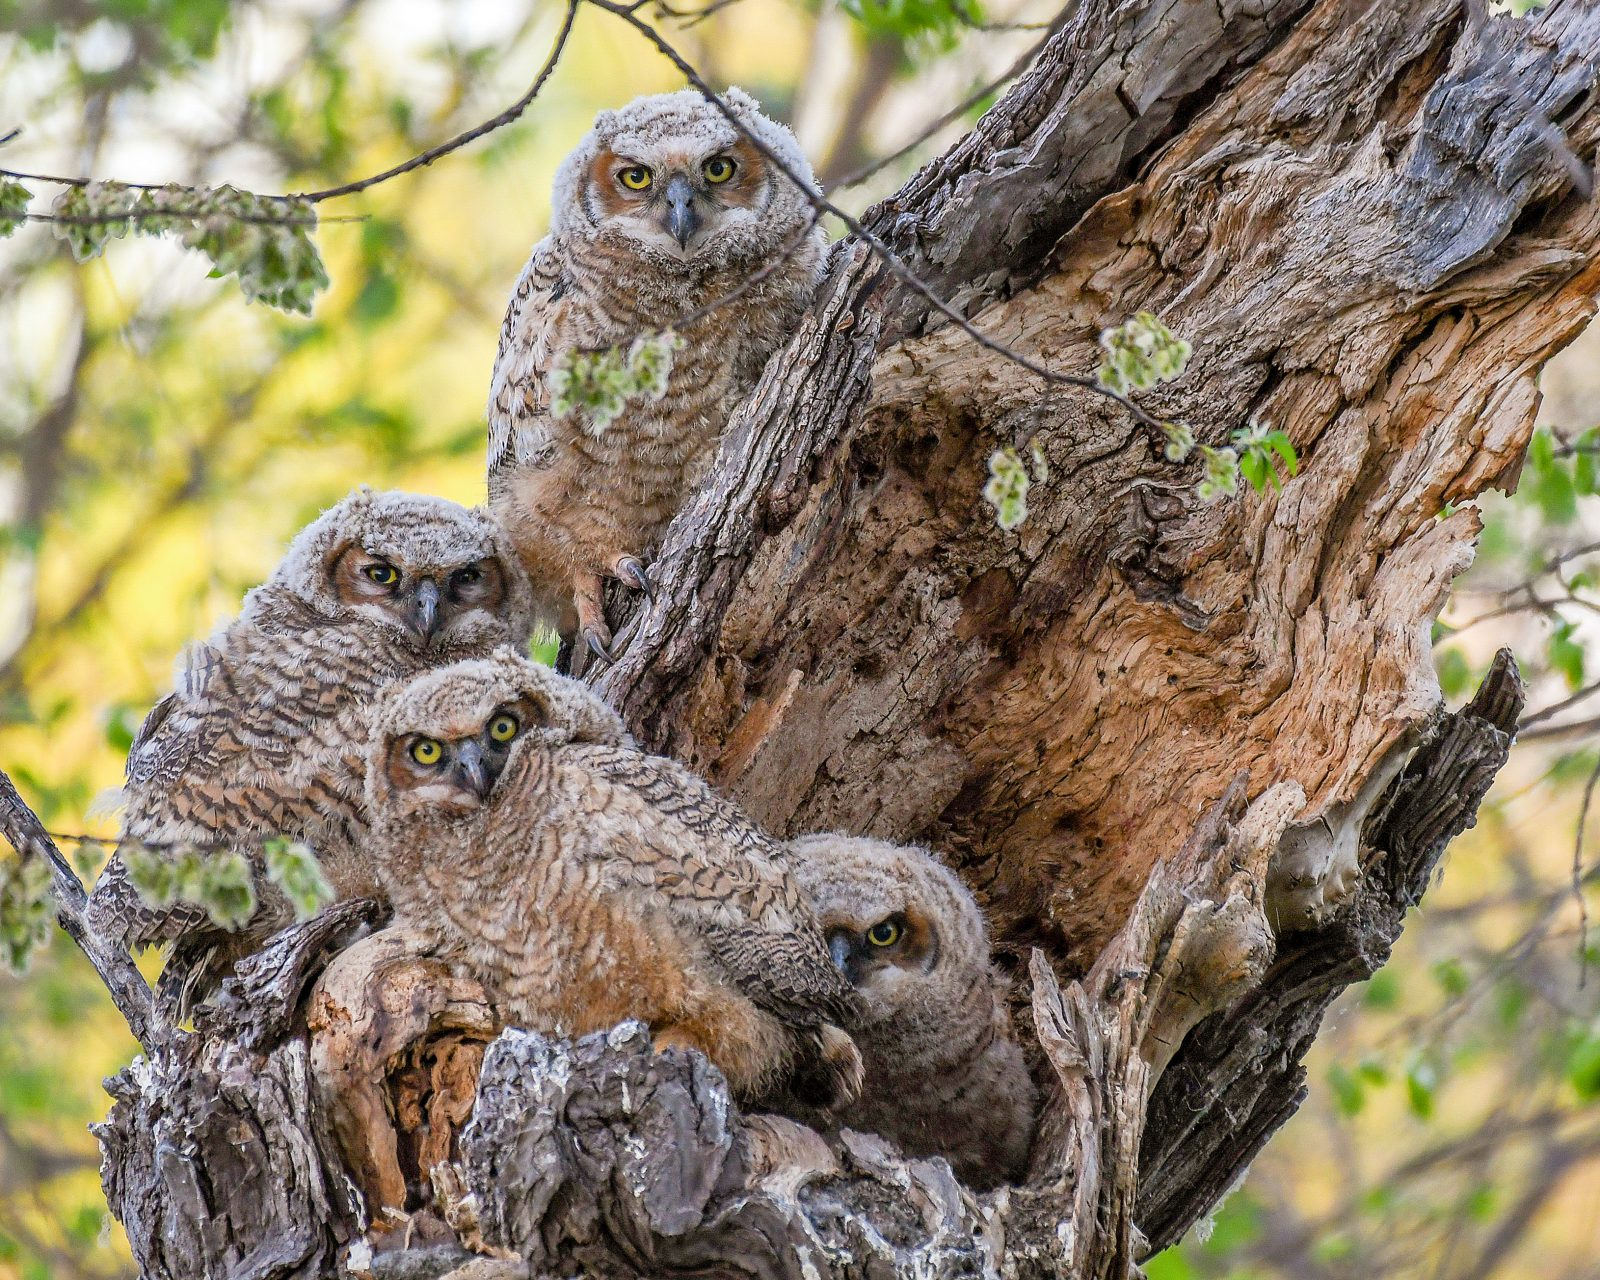 Four Great Horned Owlets in Their Nest